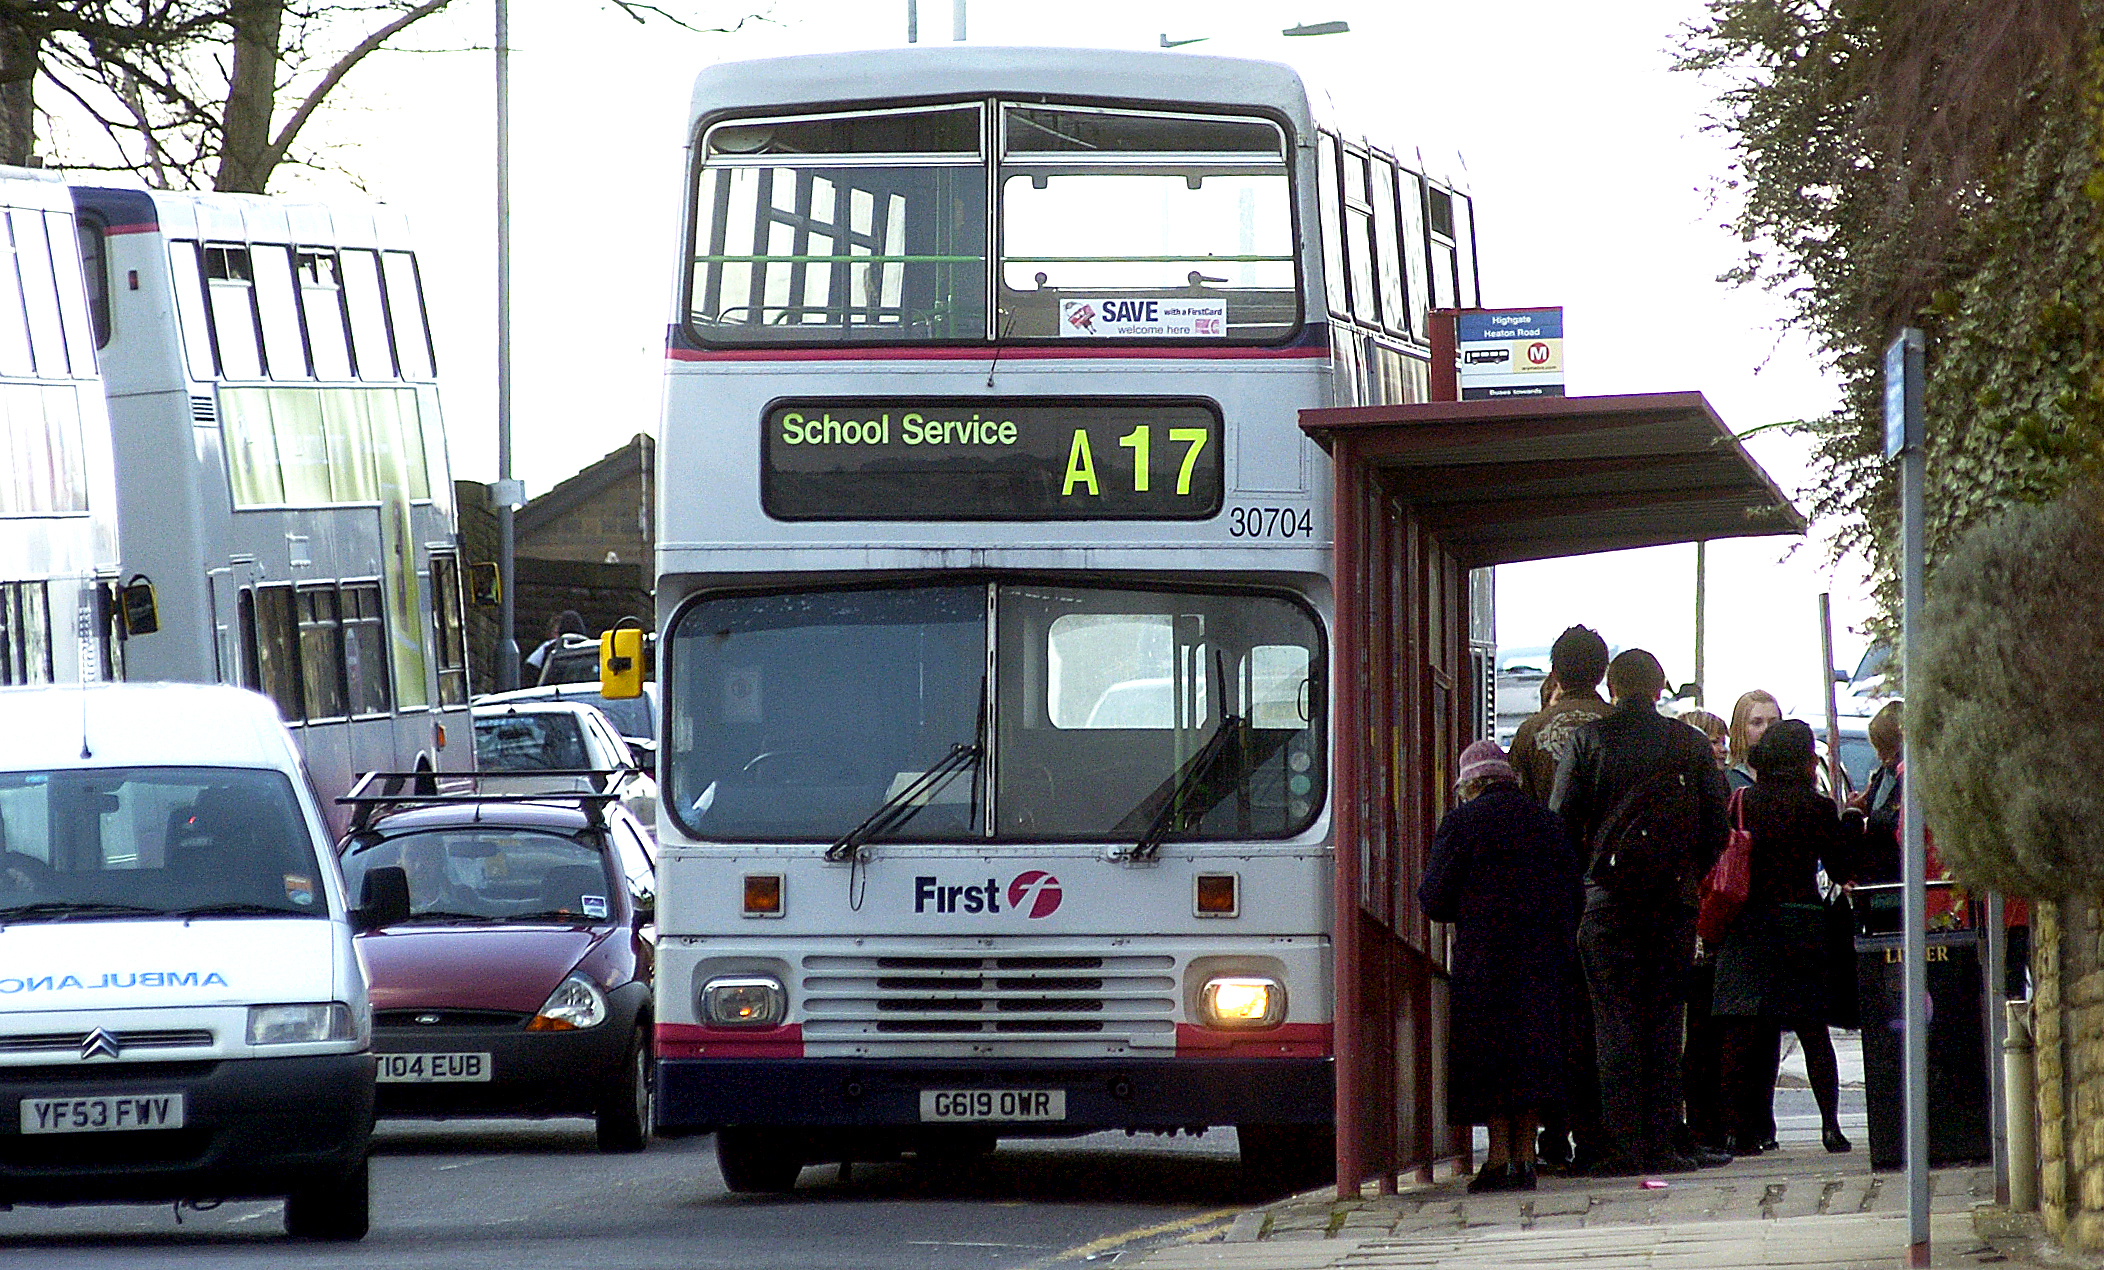 Free school bus travel to be scrapped for many Bradford pupils - new passes will cost up to £370